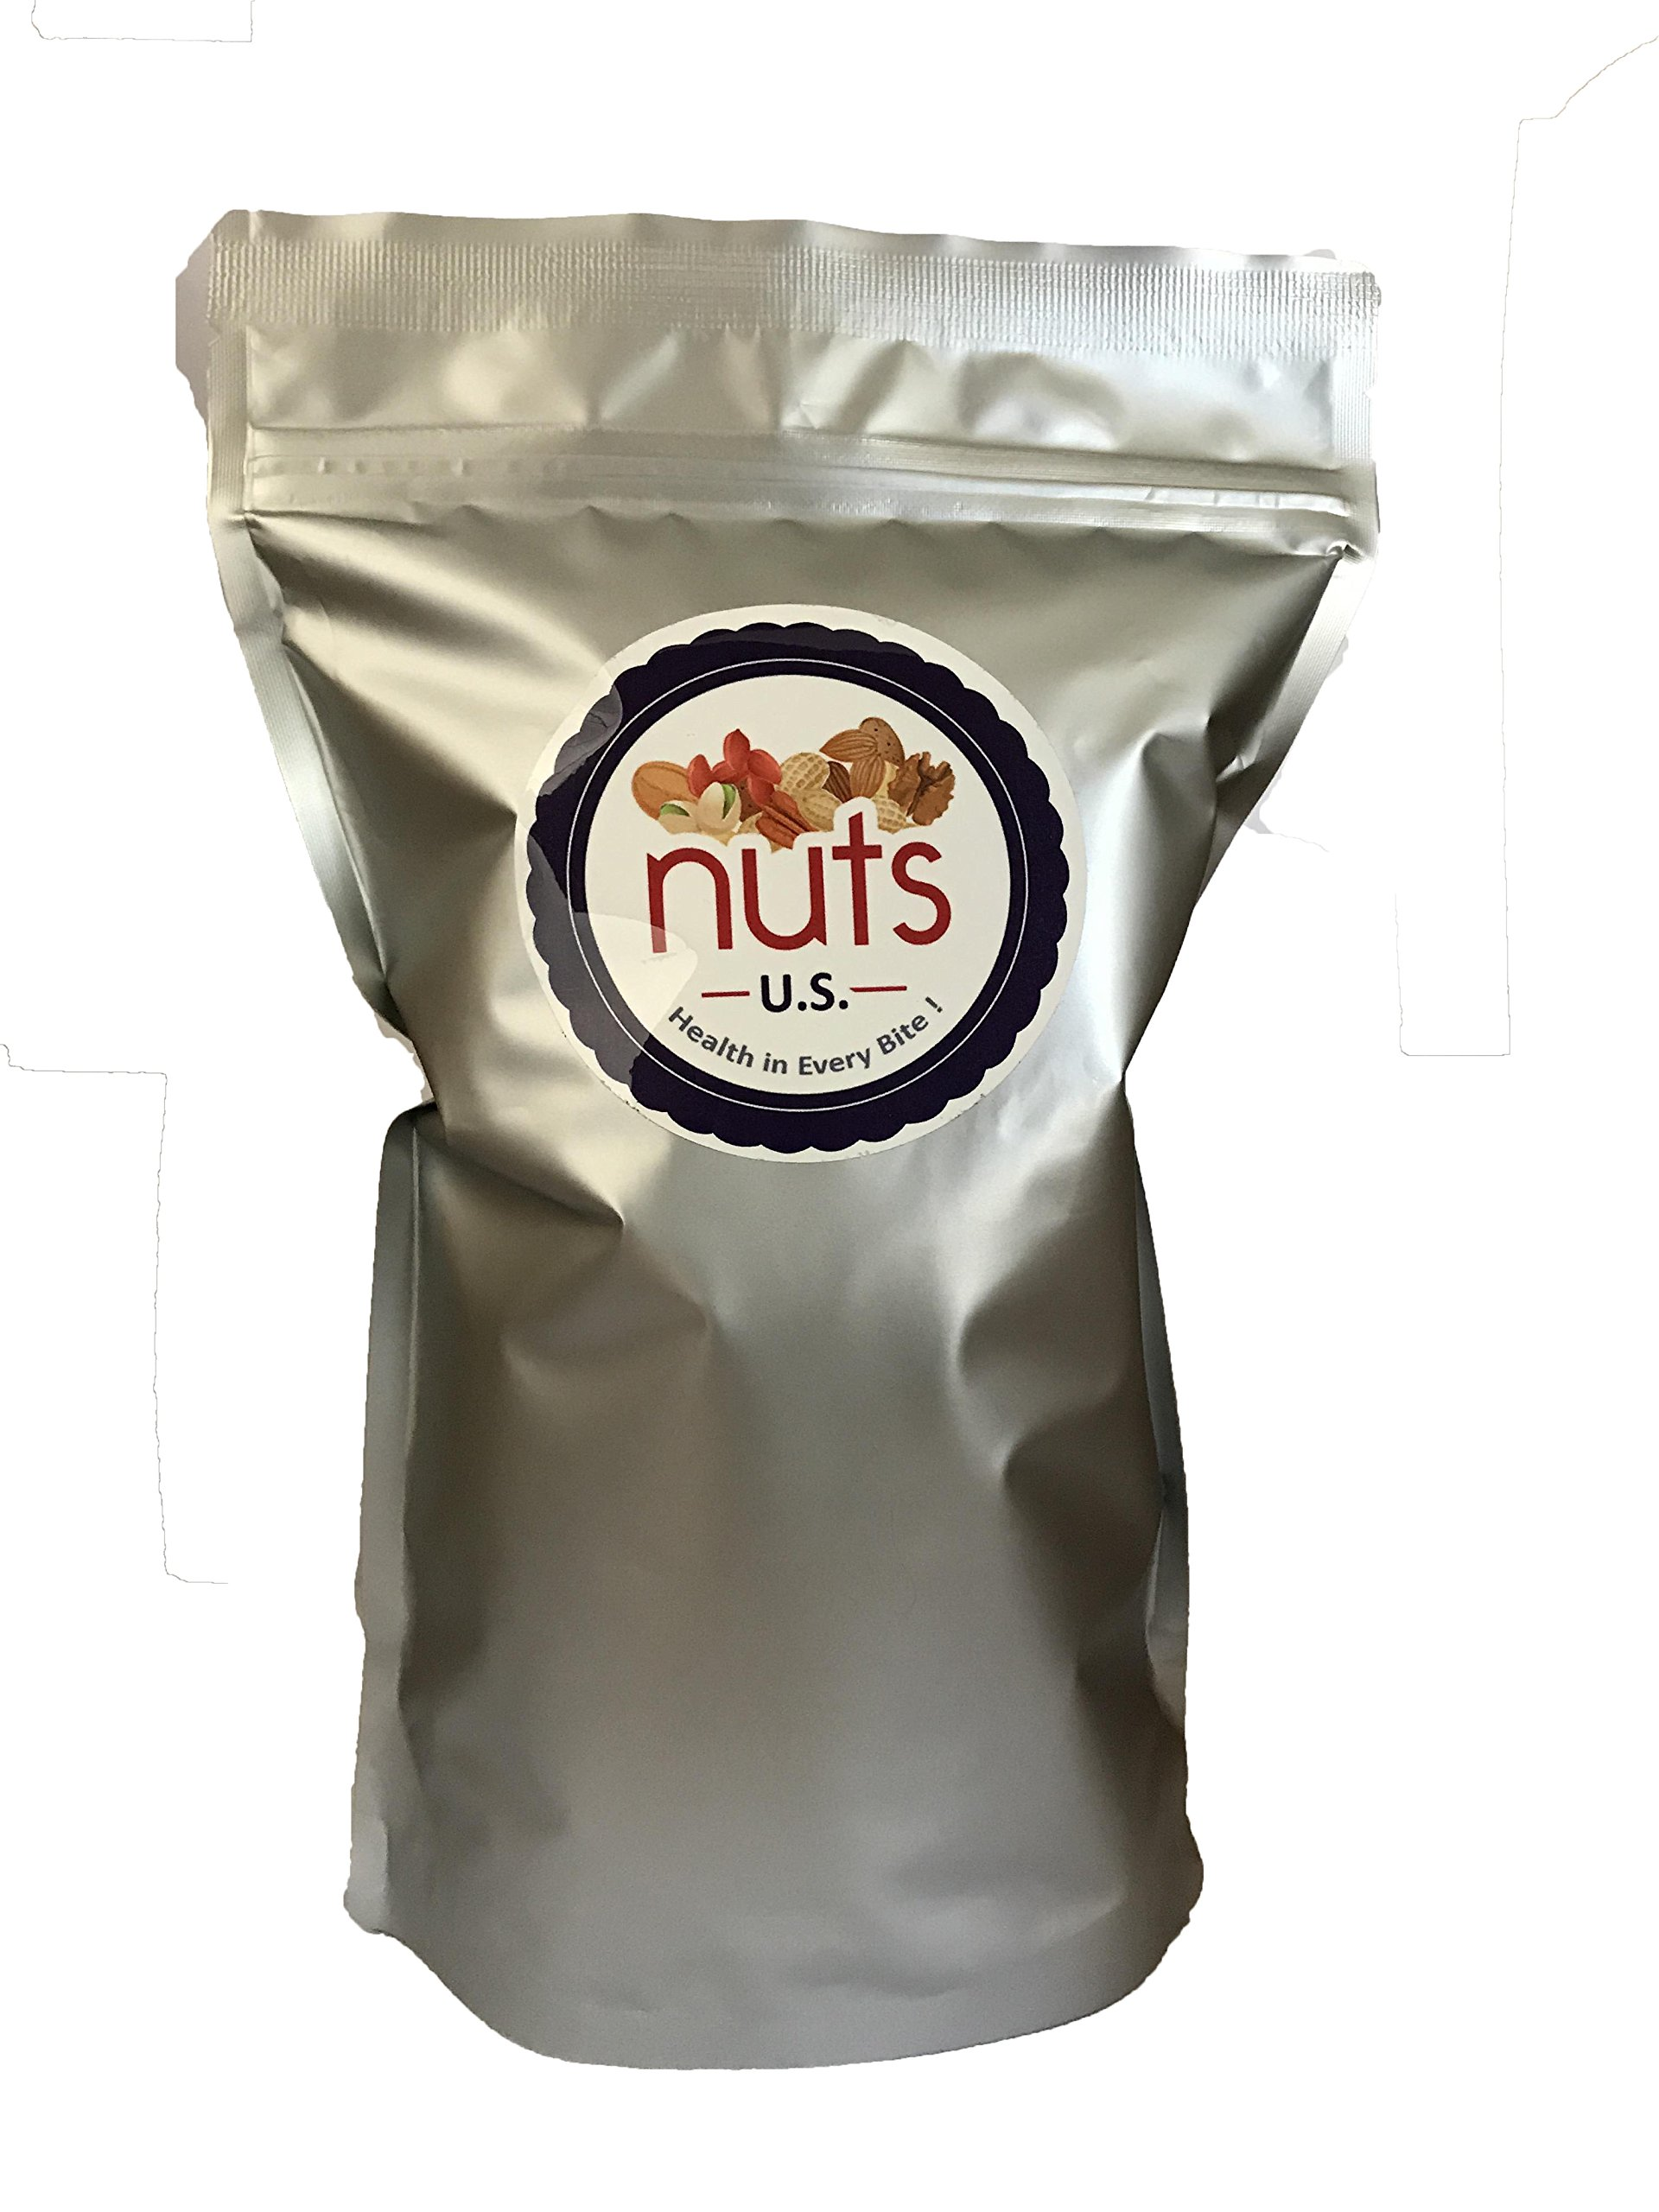 NUTS U.S. - Roasted, Unsalted, Blanched Turkish Hazelnuts (1 LB)